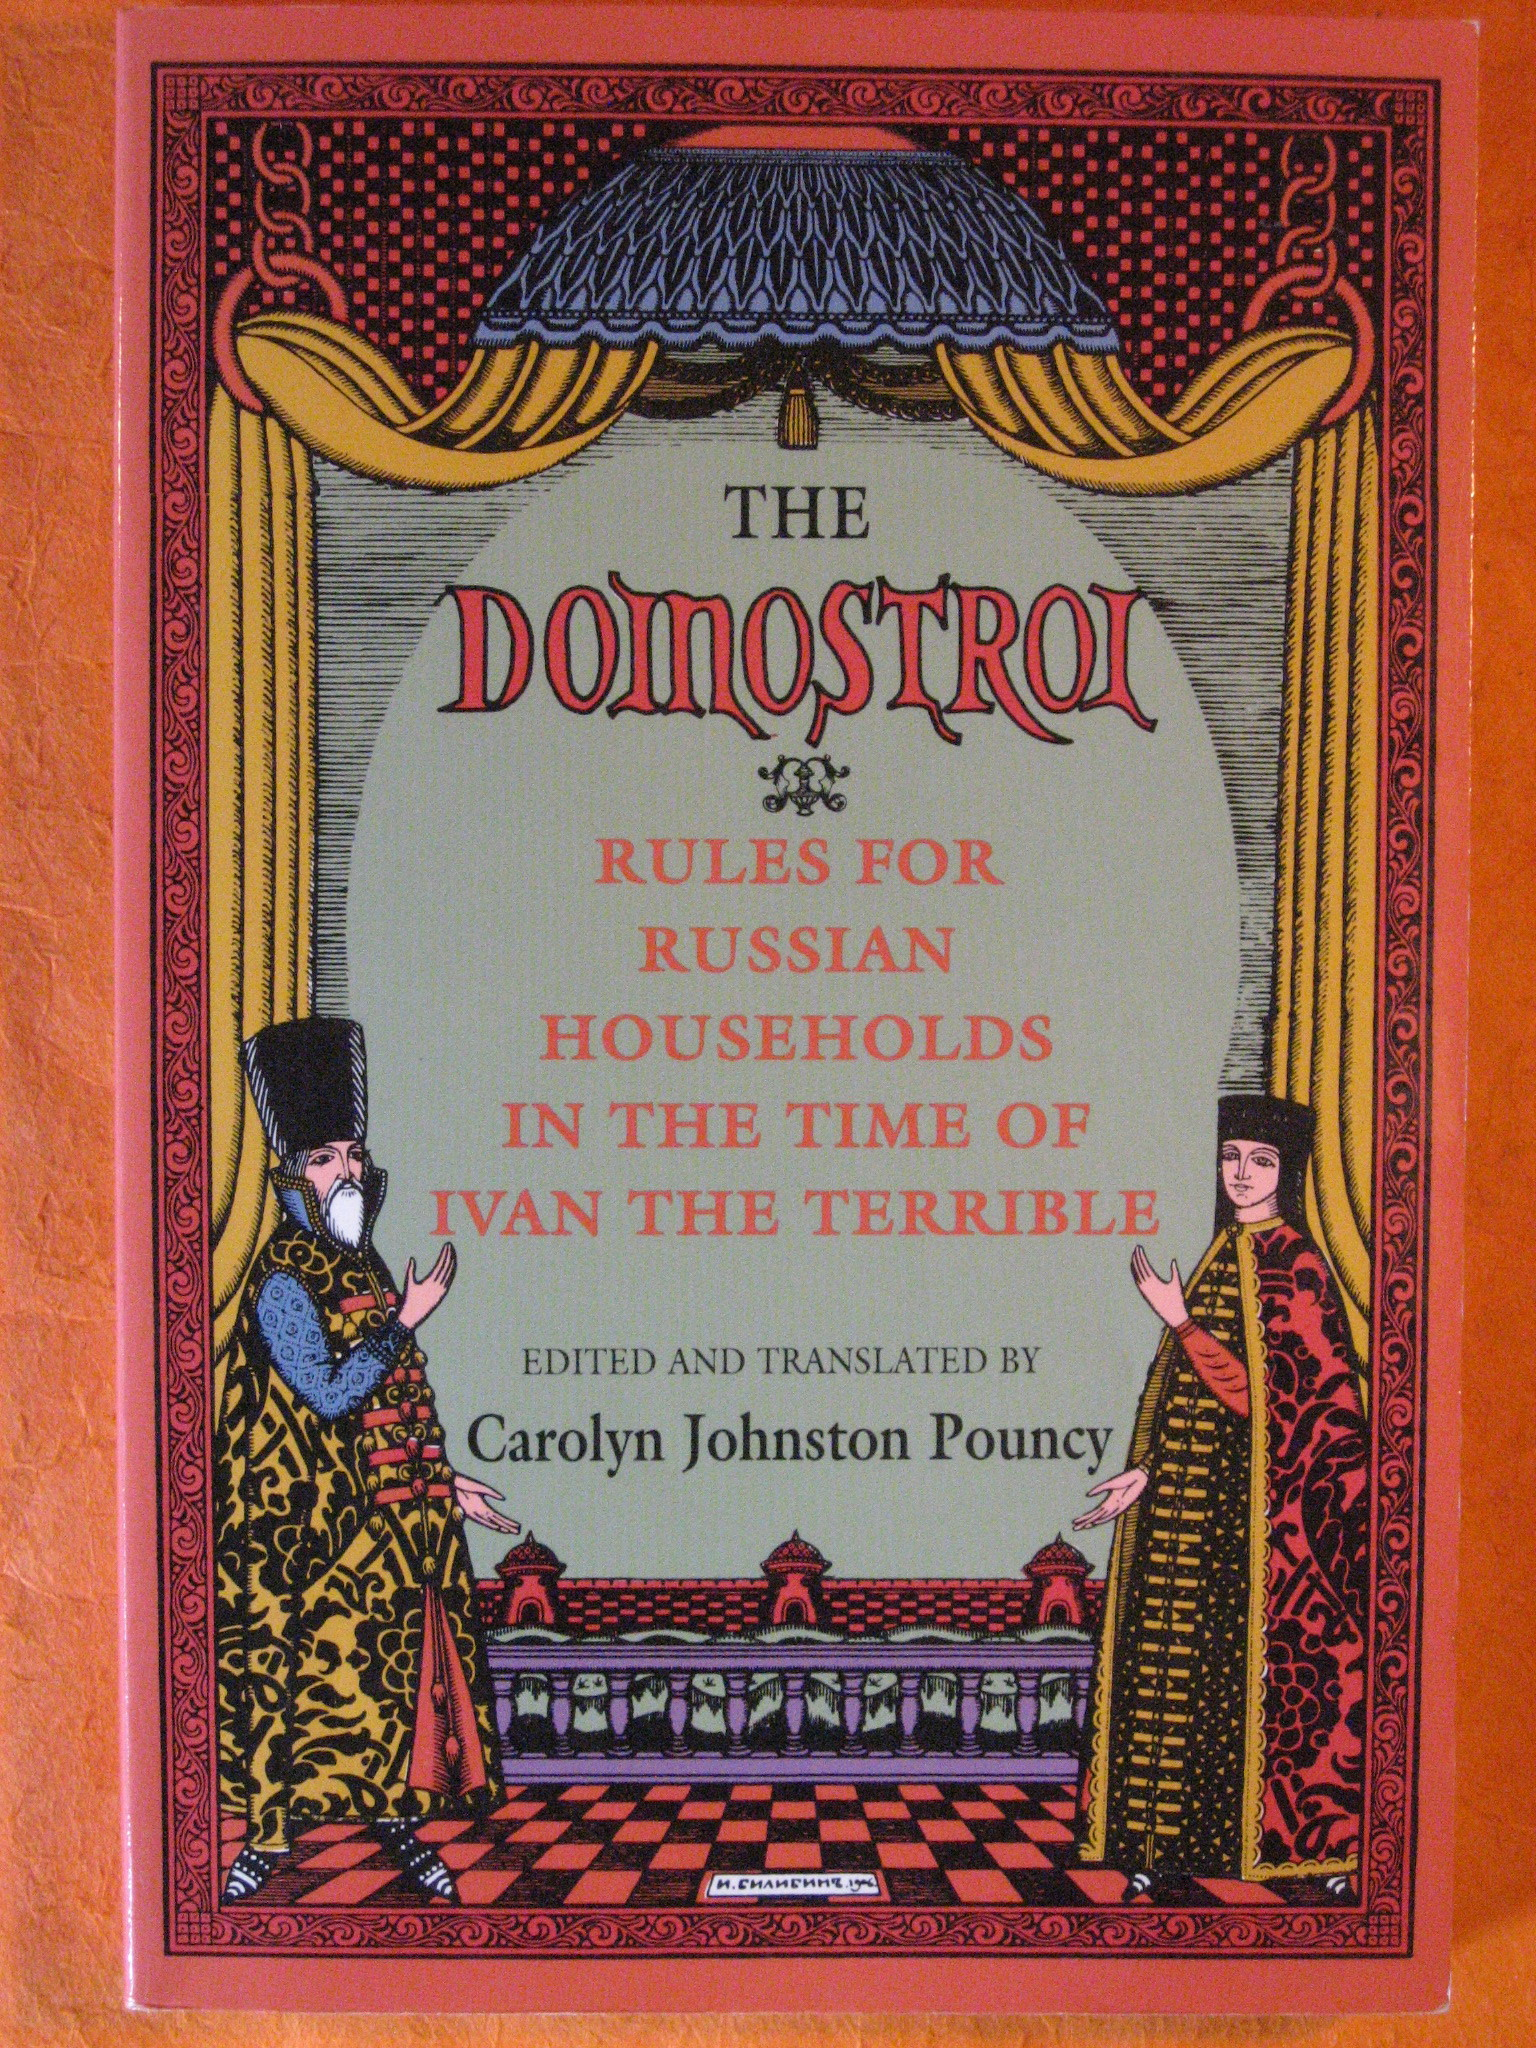 The Domostroi: Rules for Russian Households in the Time of Ivan the Terrible, Pouncy, Carolyn Johnston